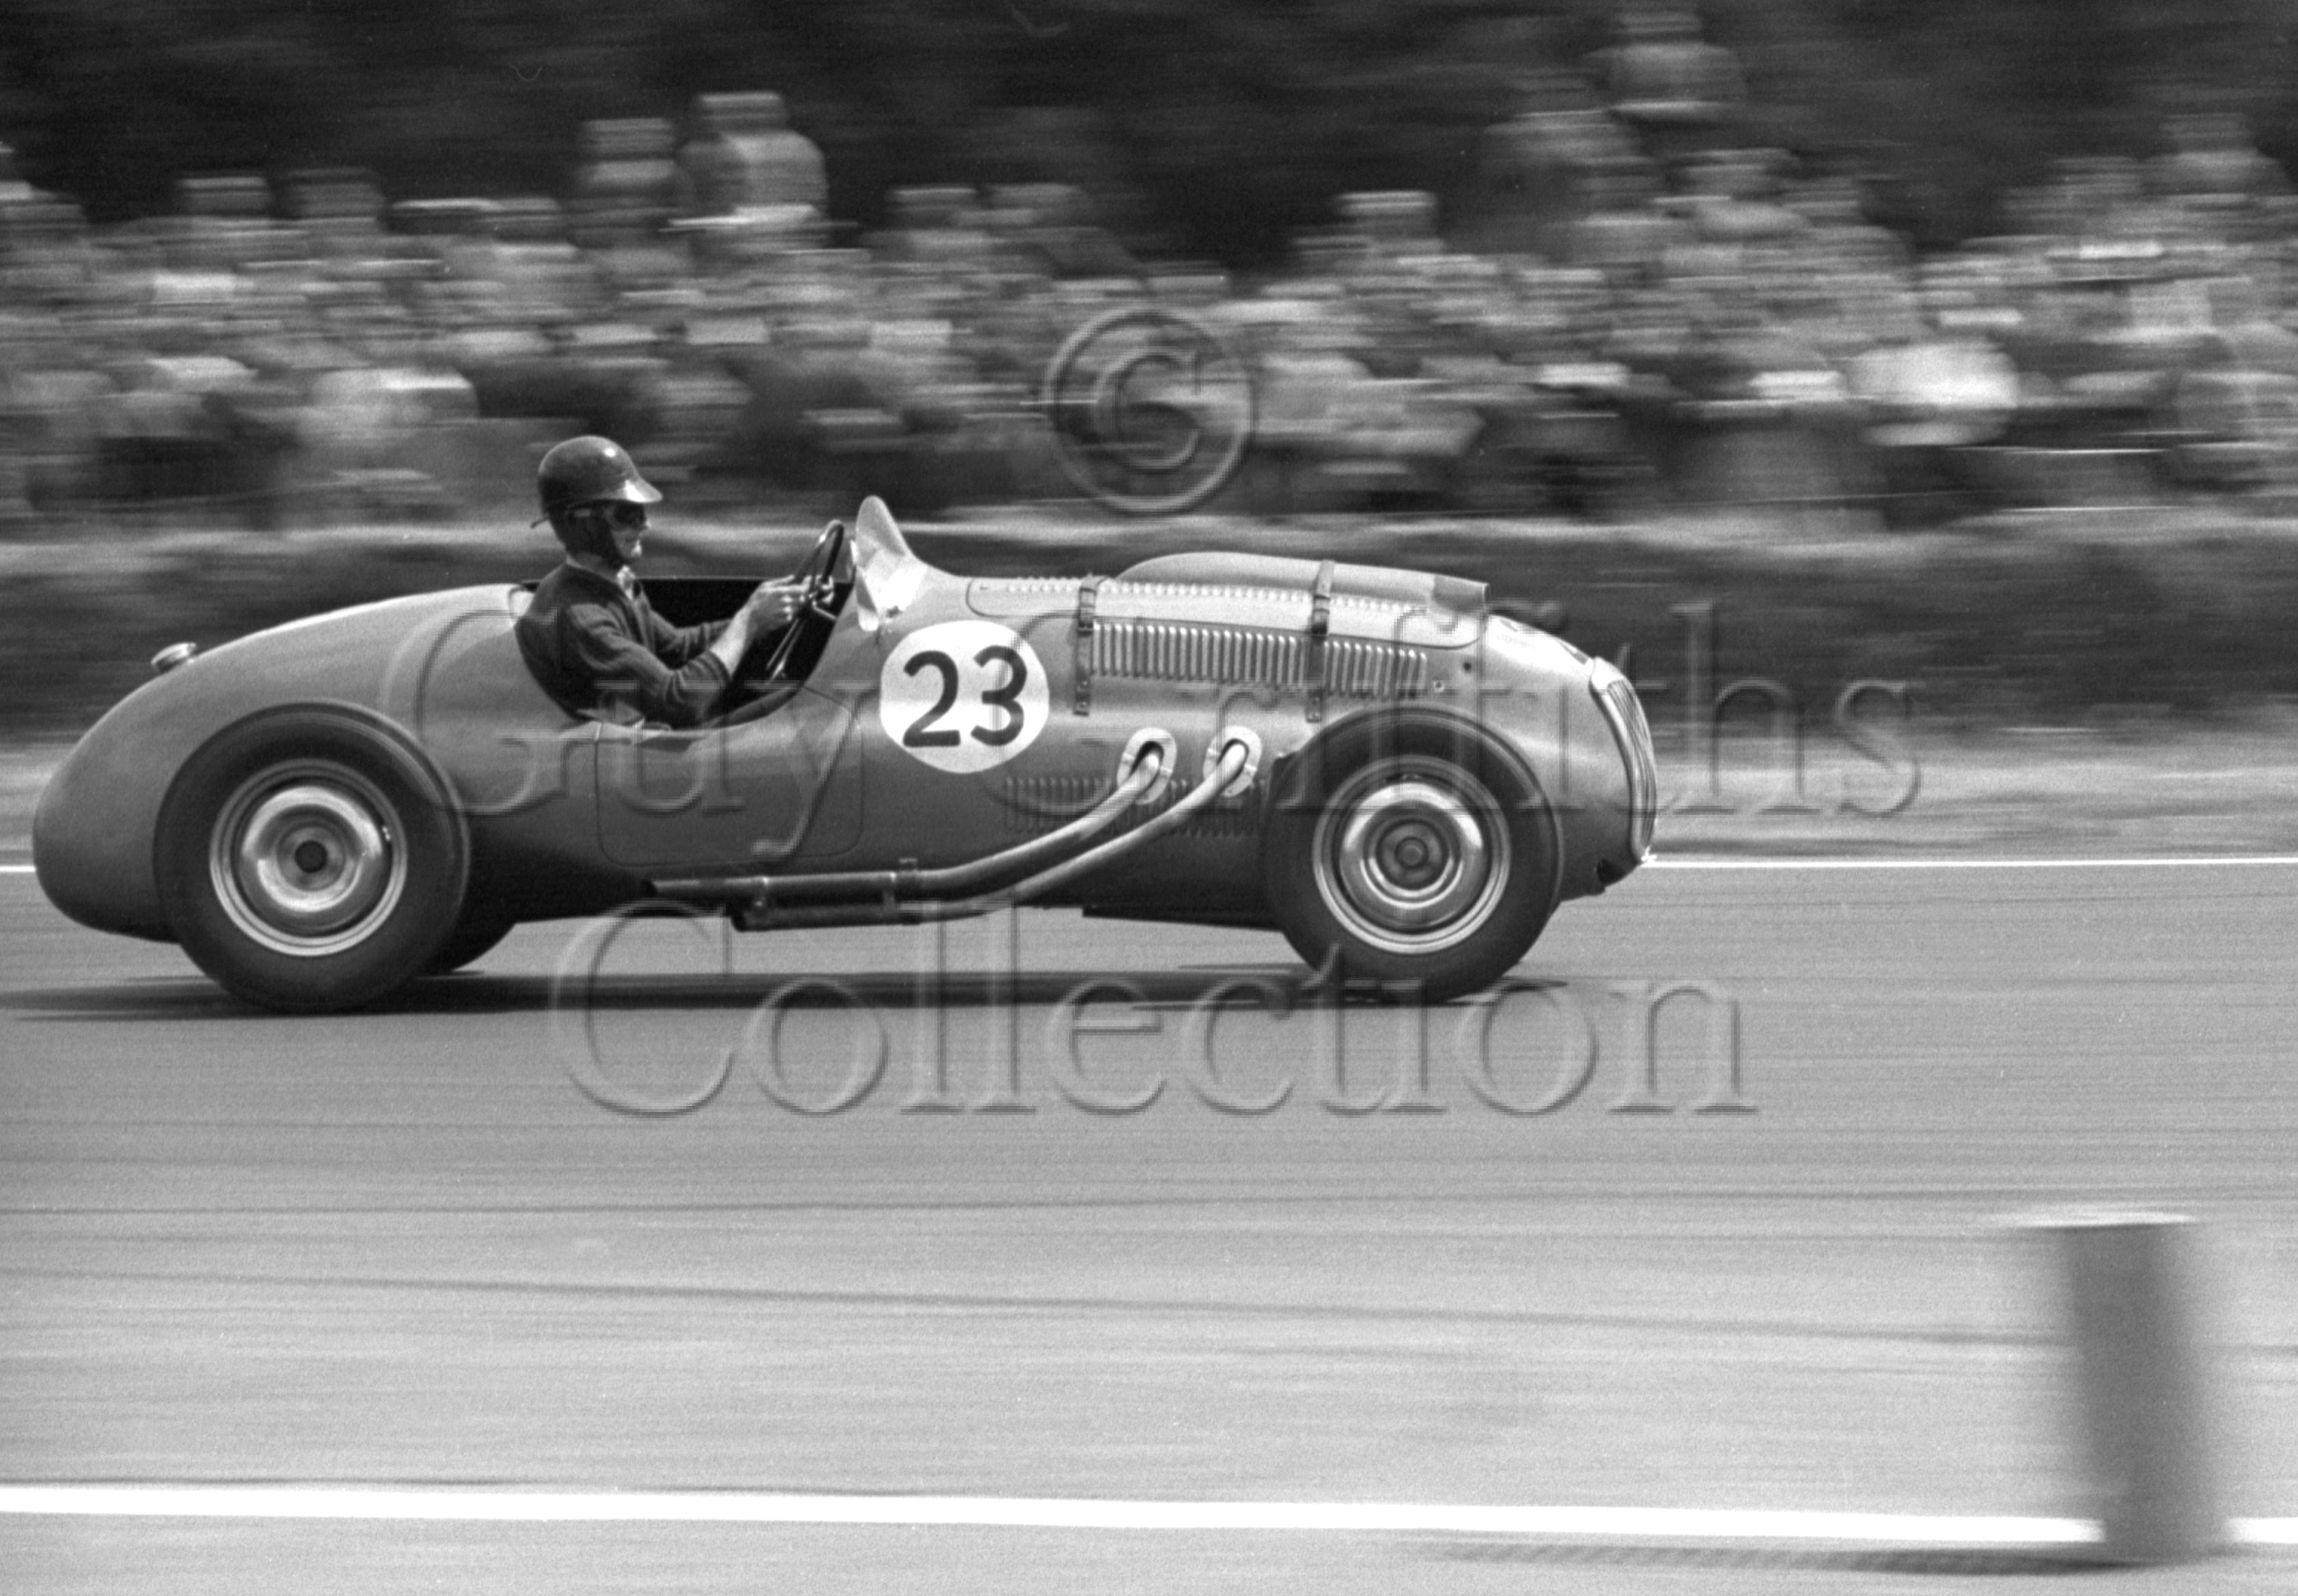 57-906–T-Crook–Frazer-Nash–Silverstone–19-07-1952.jpg - The Guy Griffiths Collection